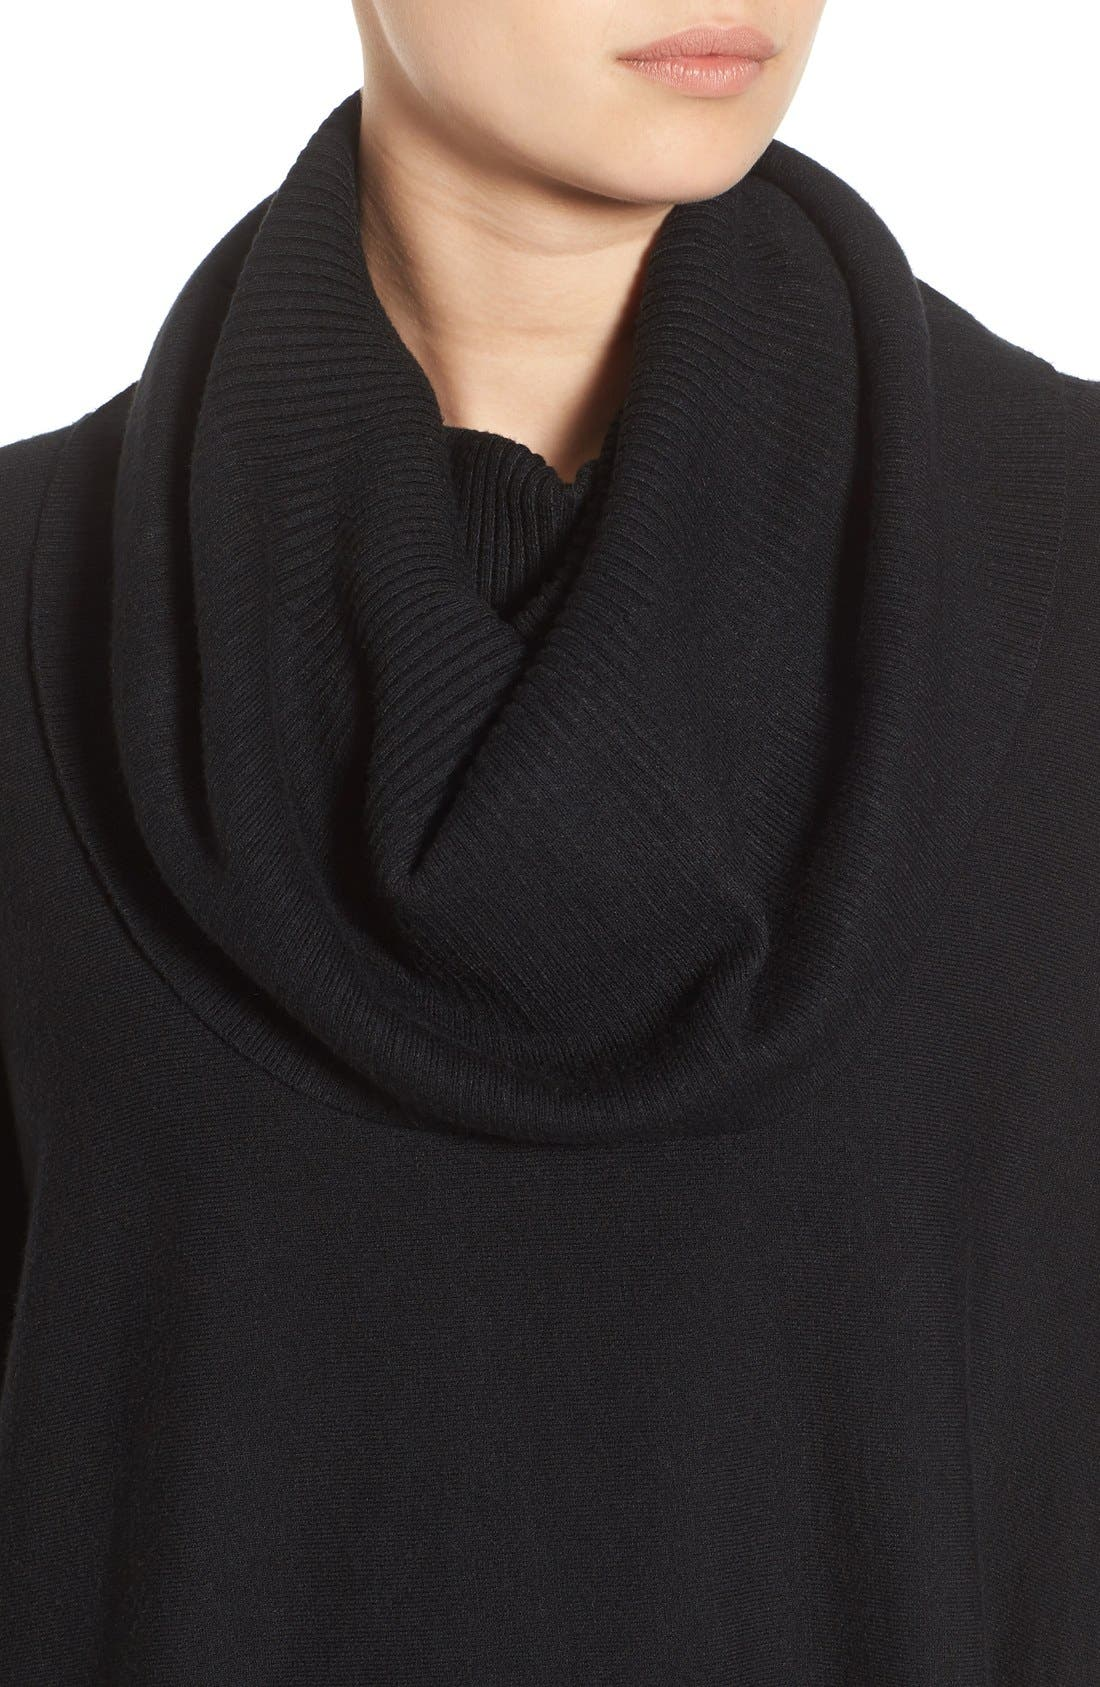 Cowl Neck Boxy Pullover,                             Alternate thumbnail 5, color,                             001